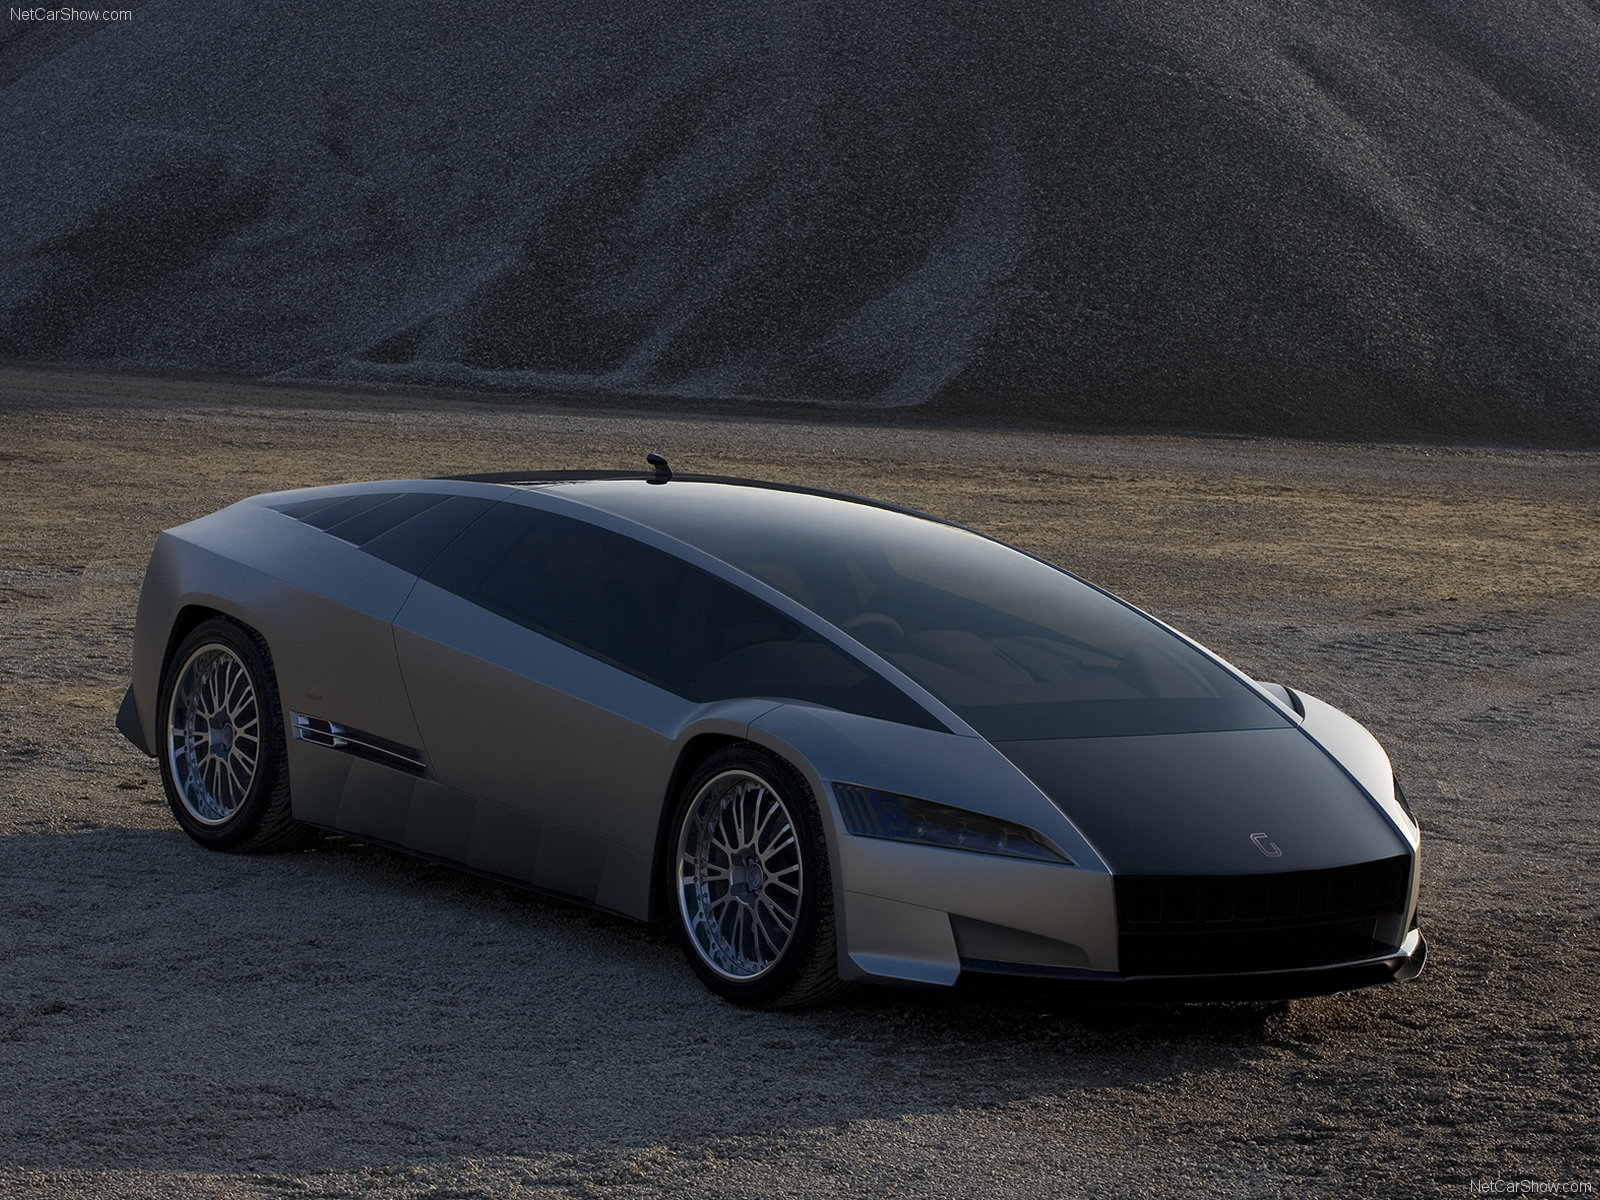 Italdesign Giugiaro Giugiardo Quaranta photo 52952